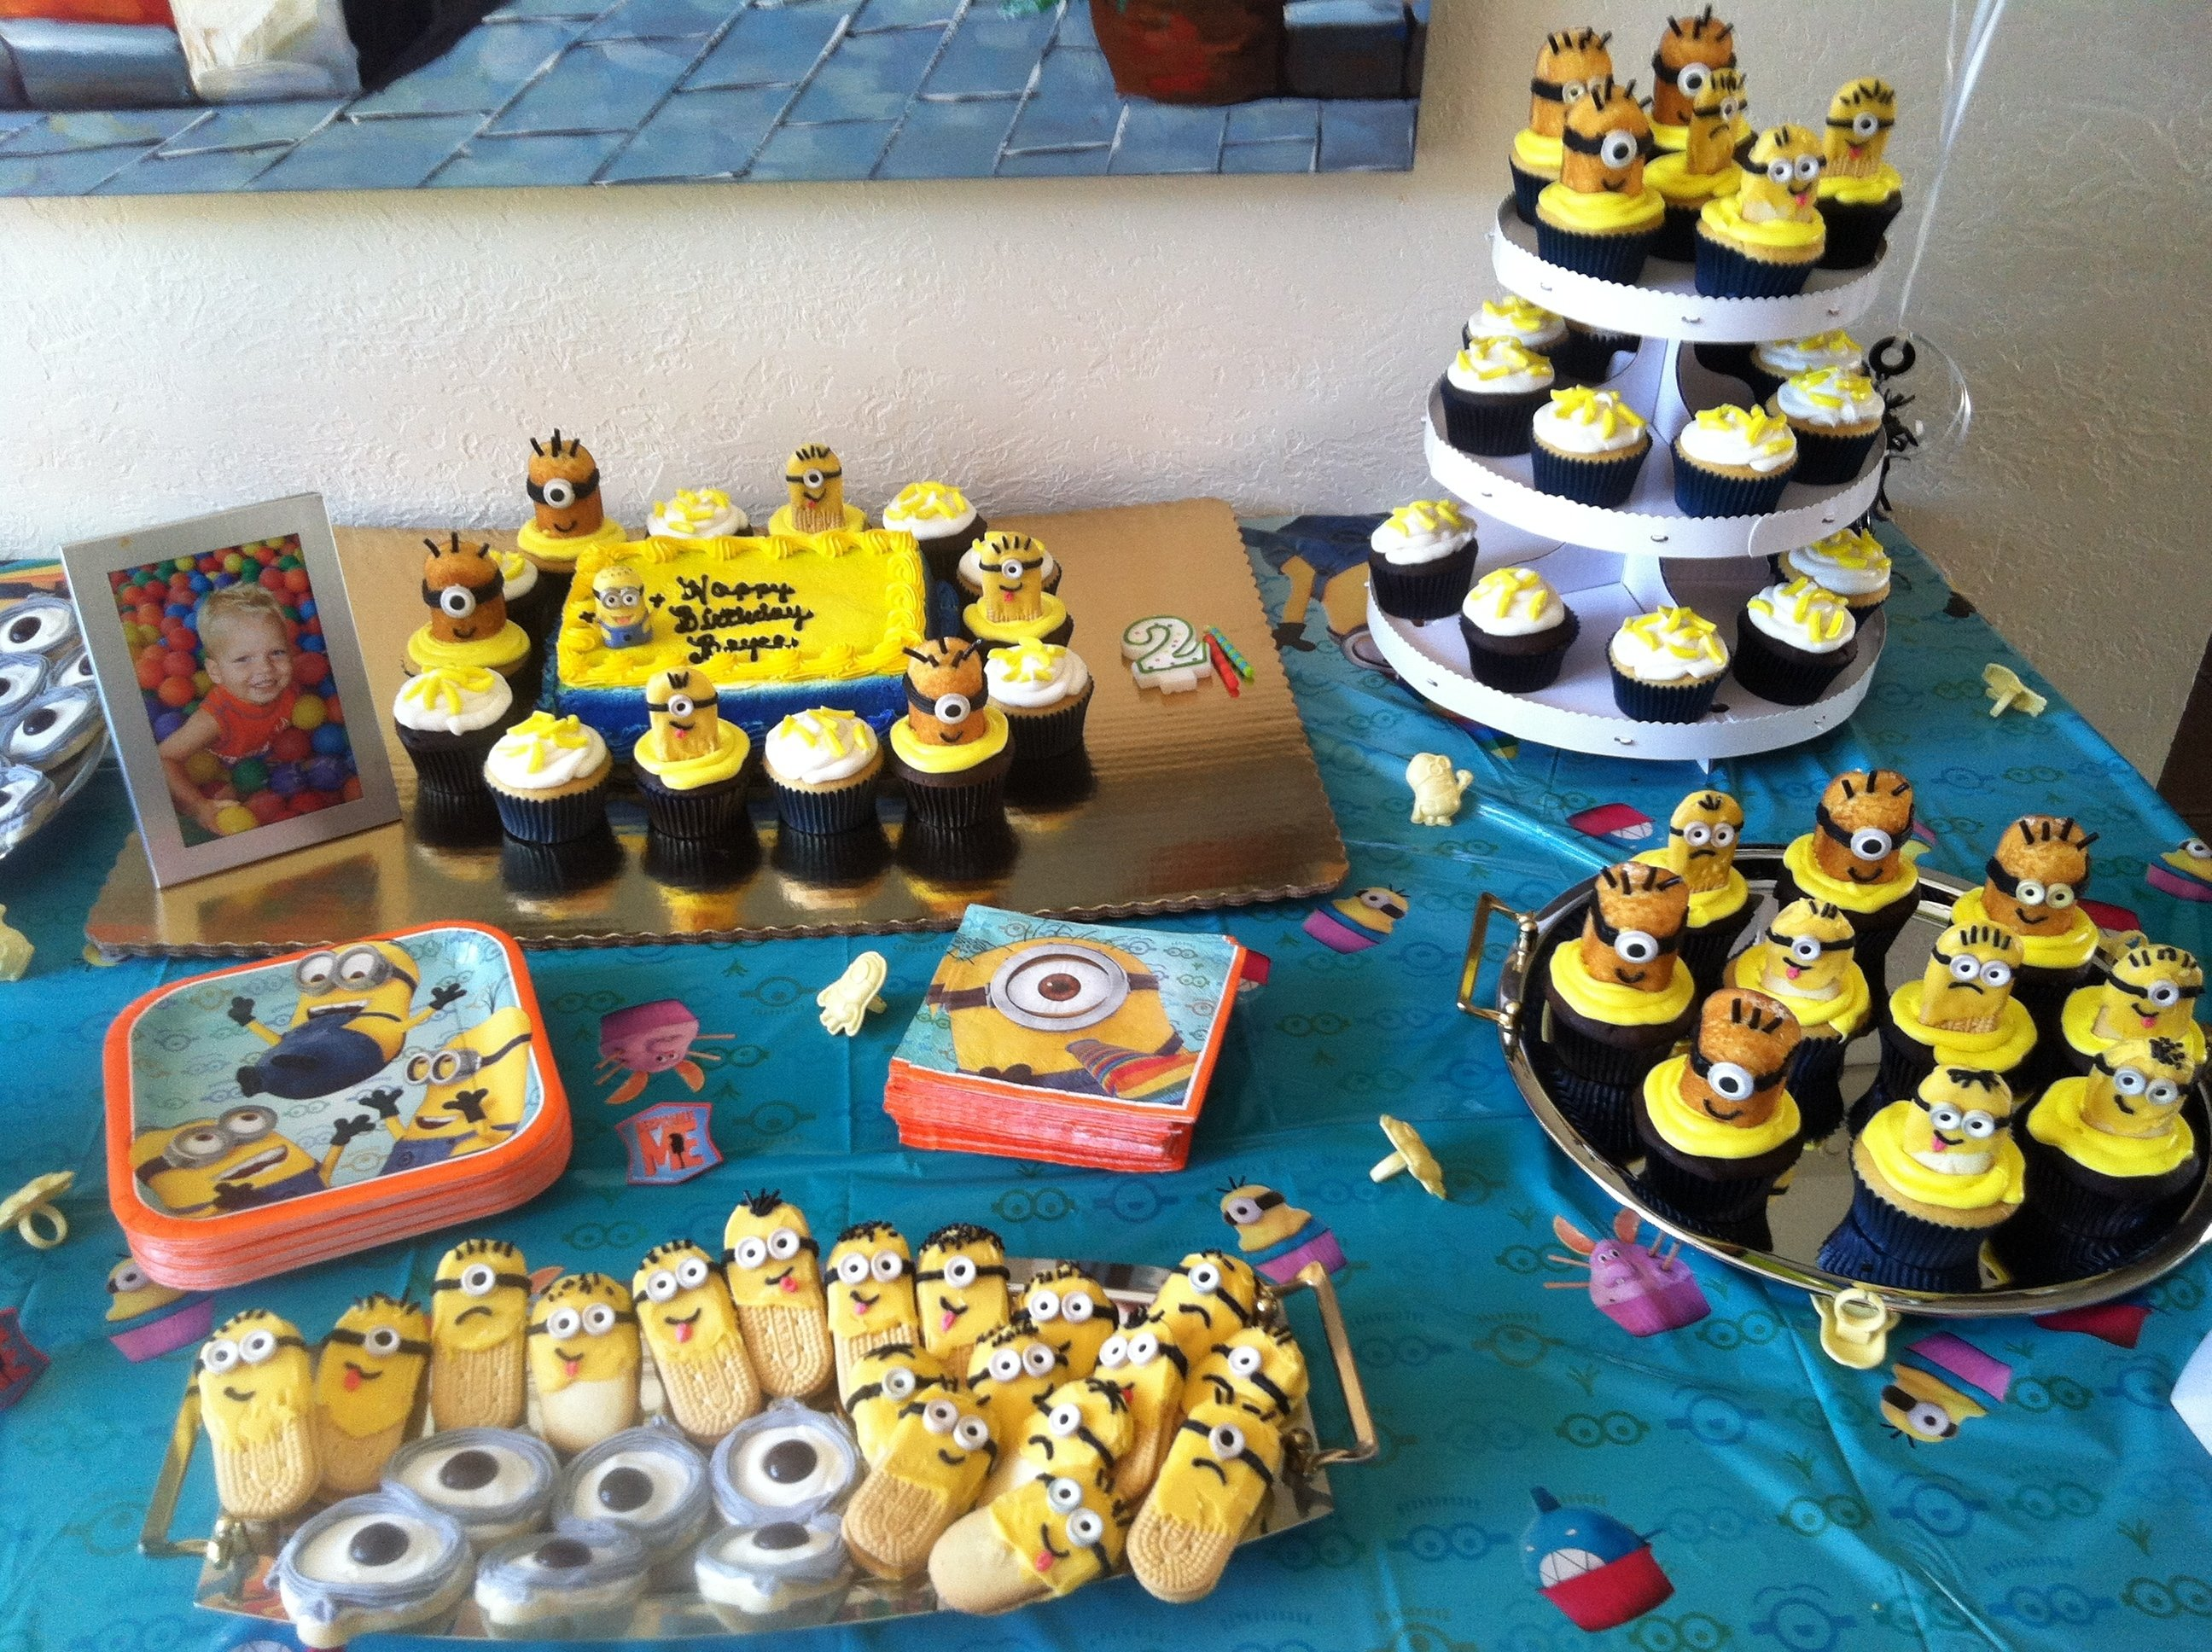 10 Fashionable Ideas For 2 Year Old Birthday Themes Party